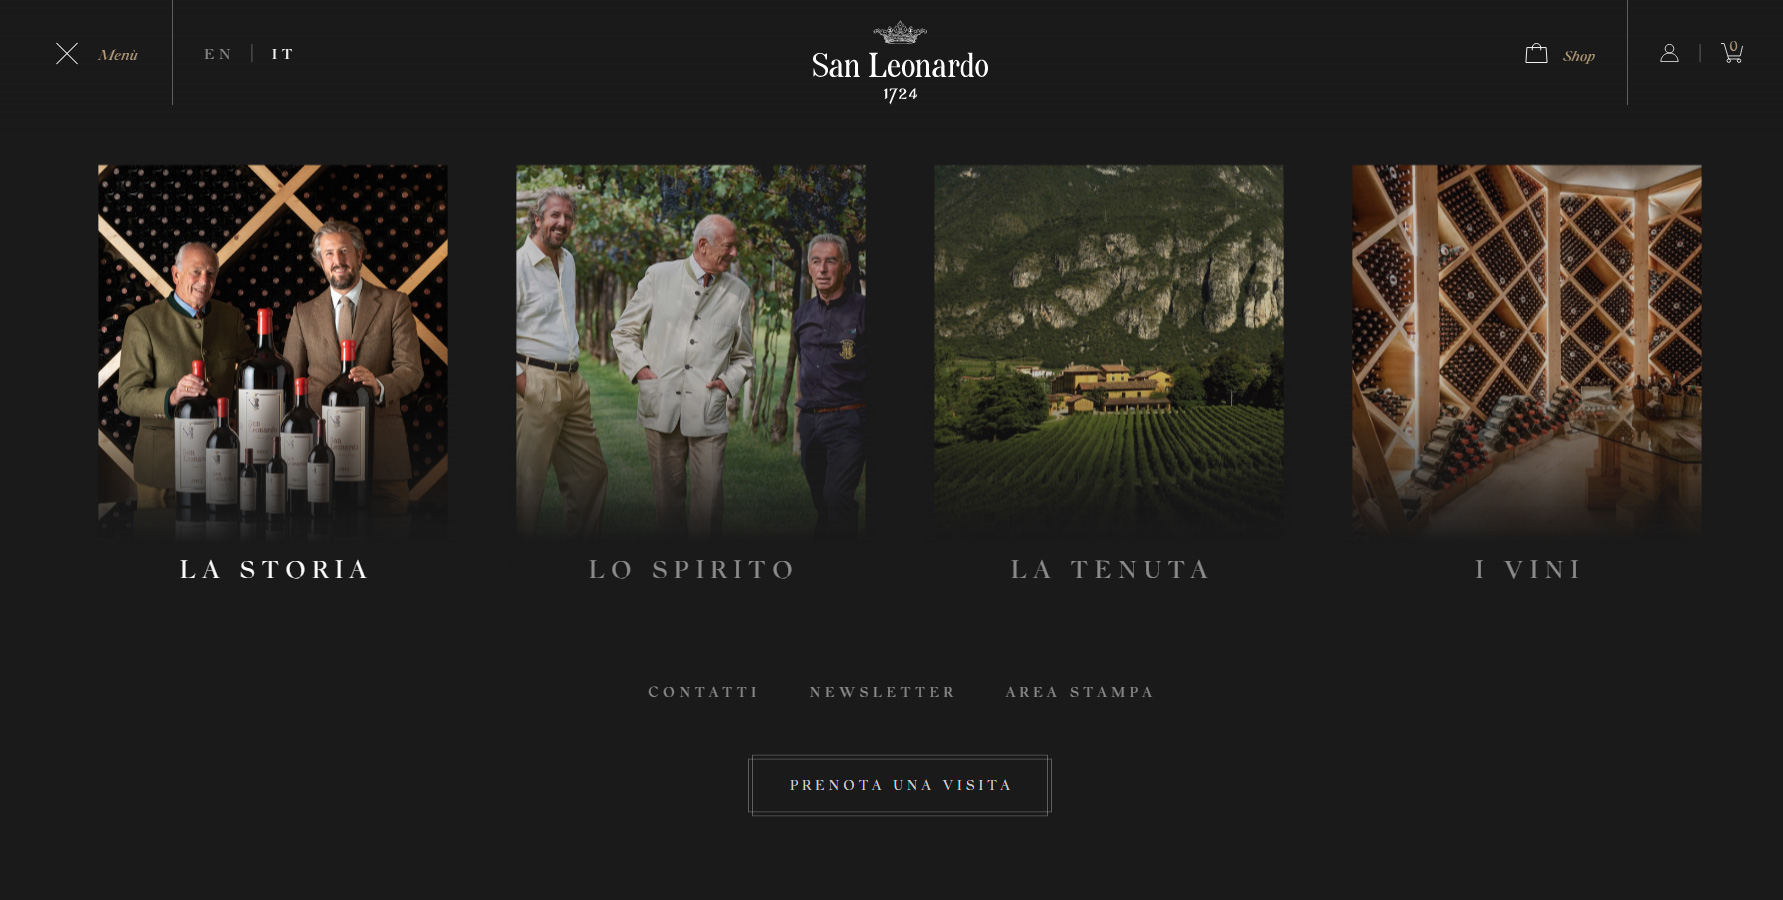 San Leonardo 1724 - Website of the Day